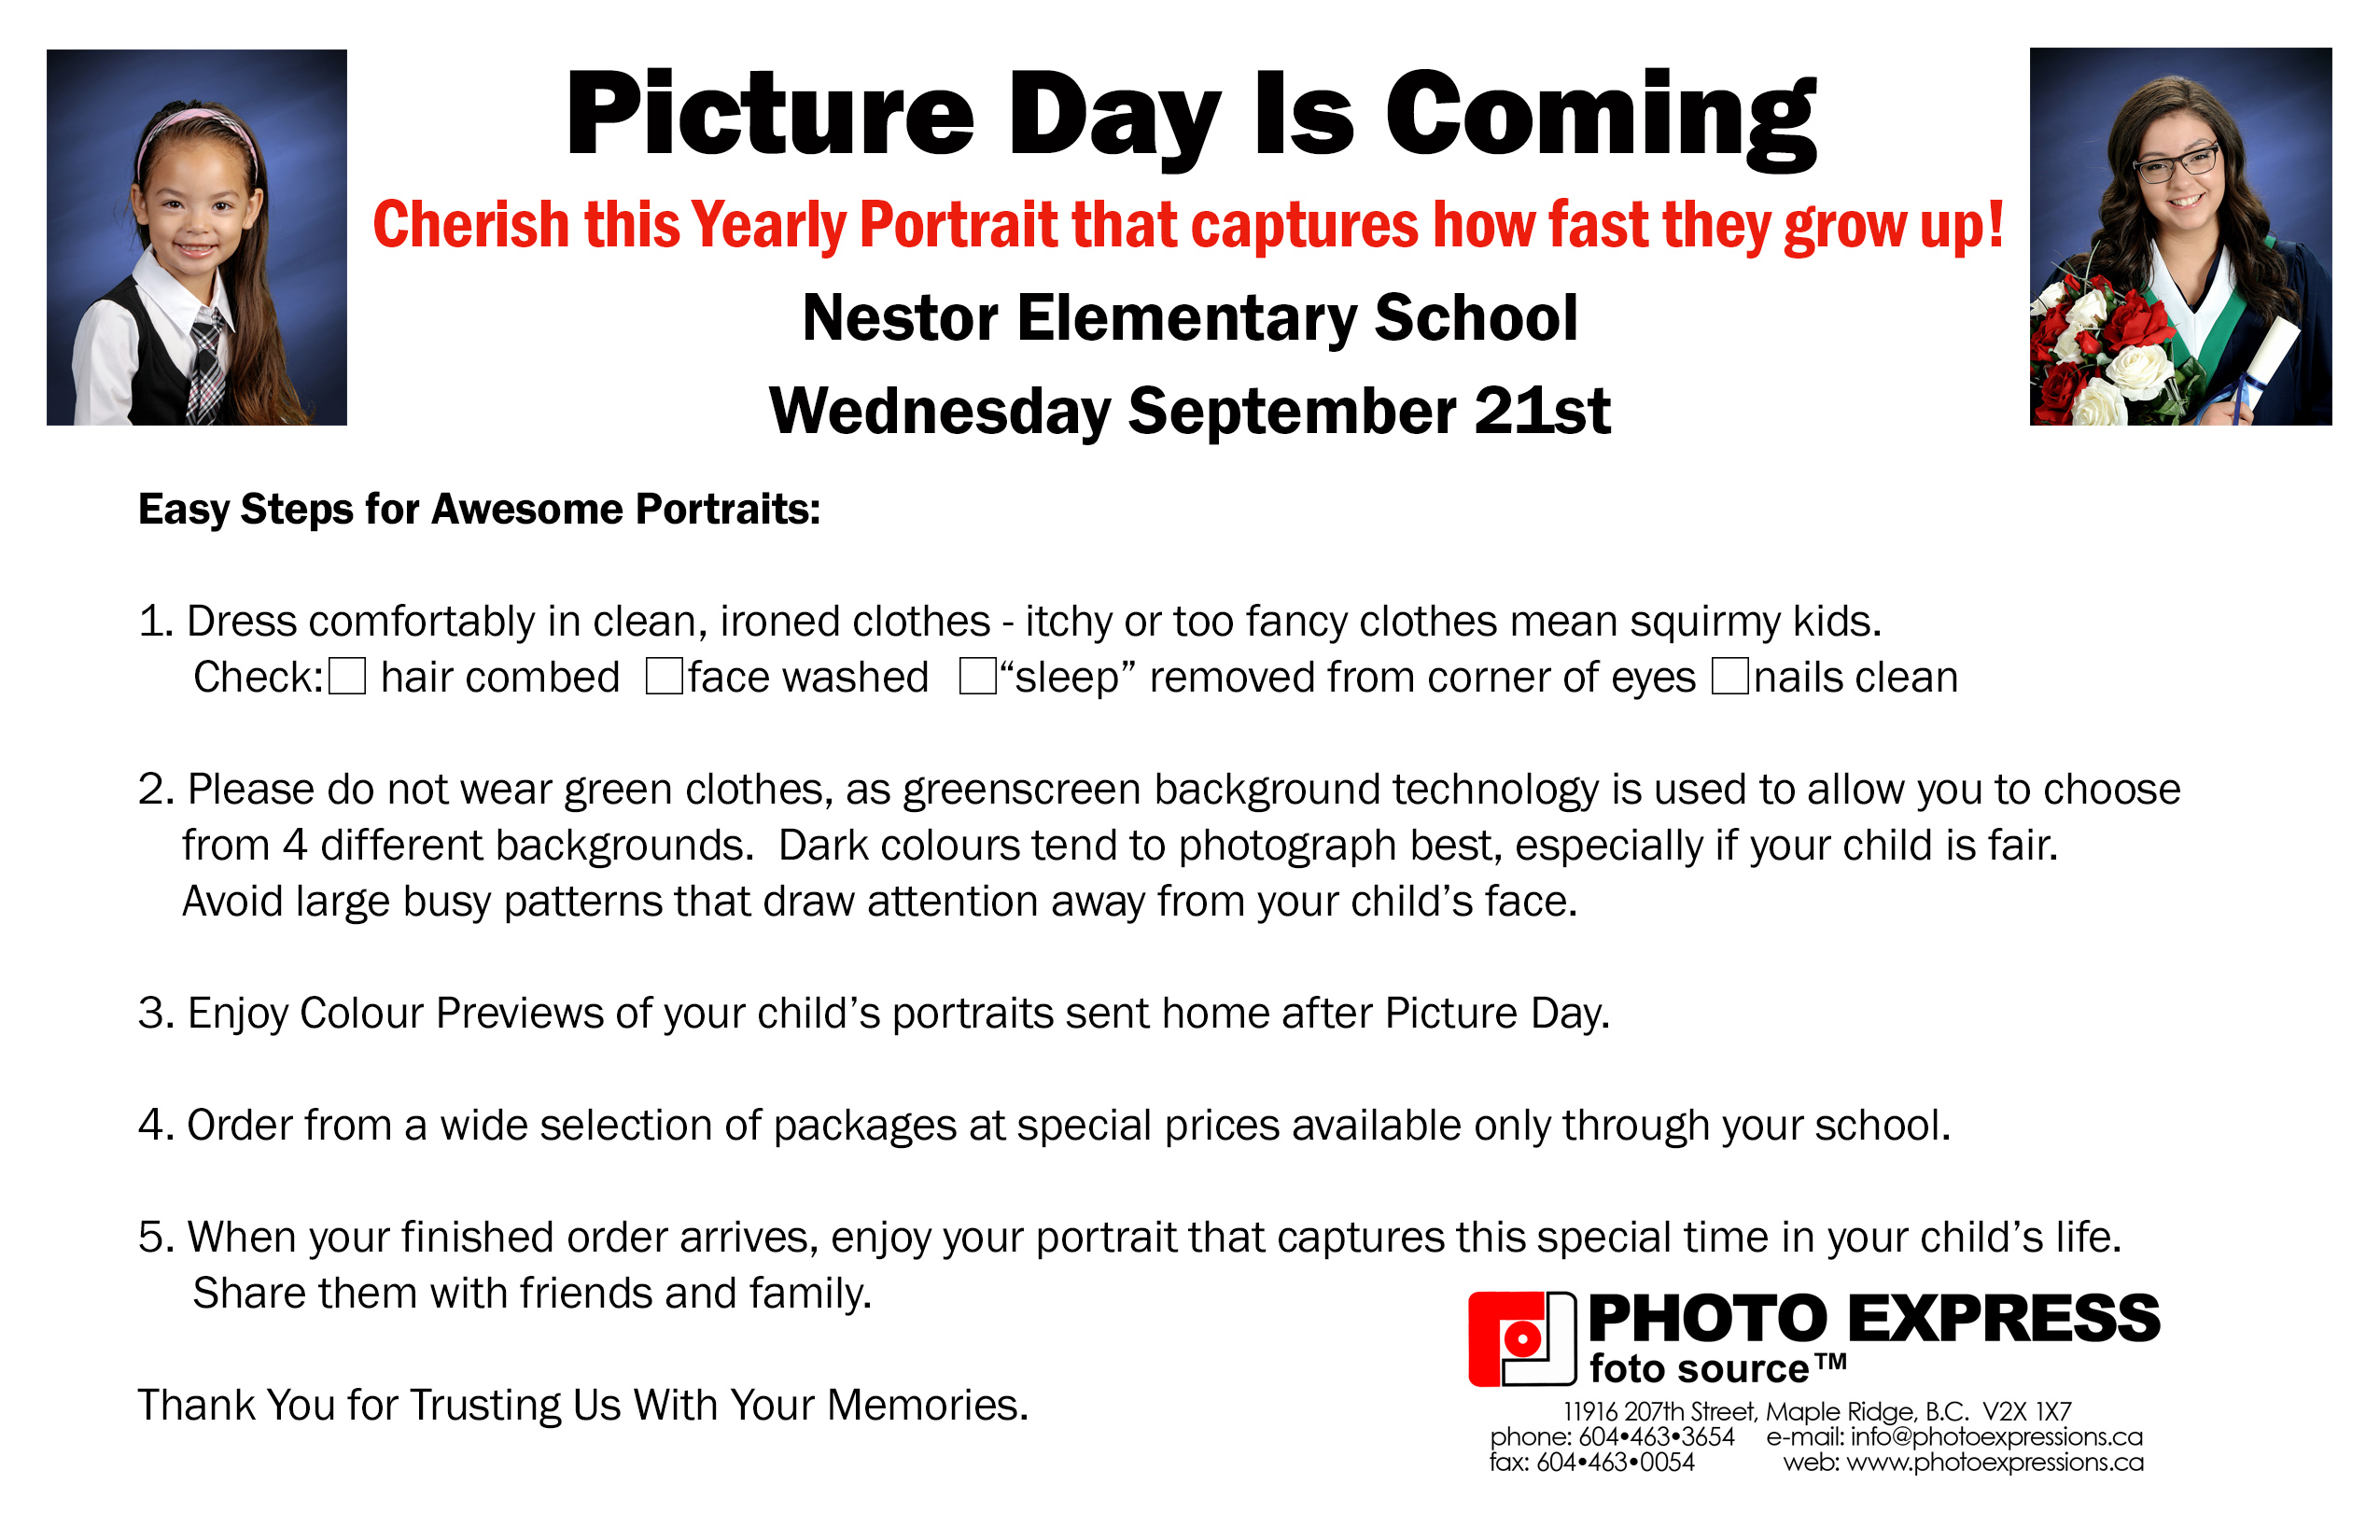 Nestor Elementary Picture Day is Coming 2016